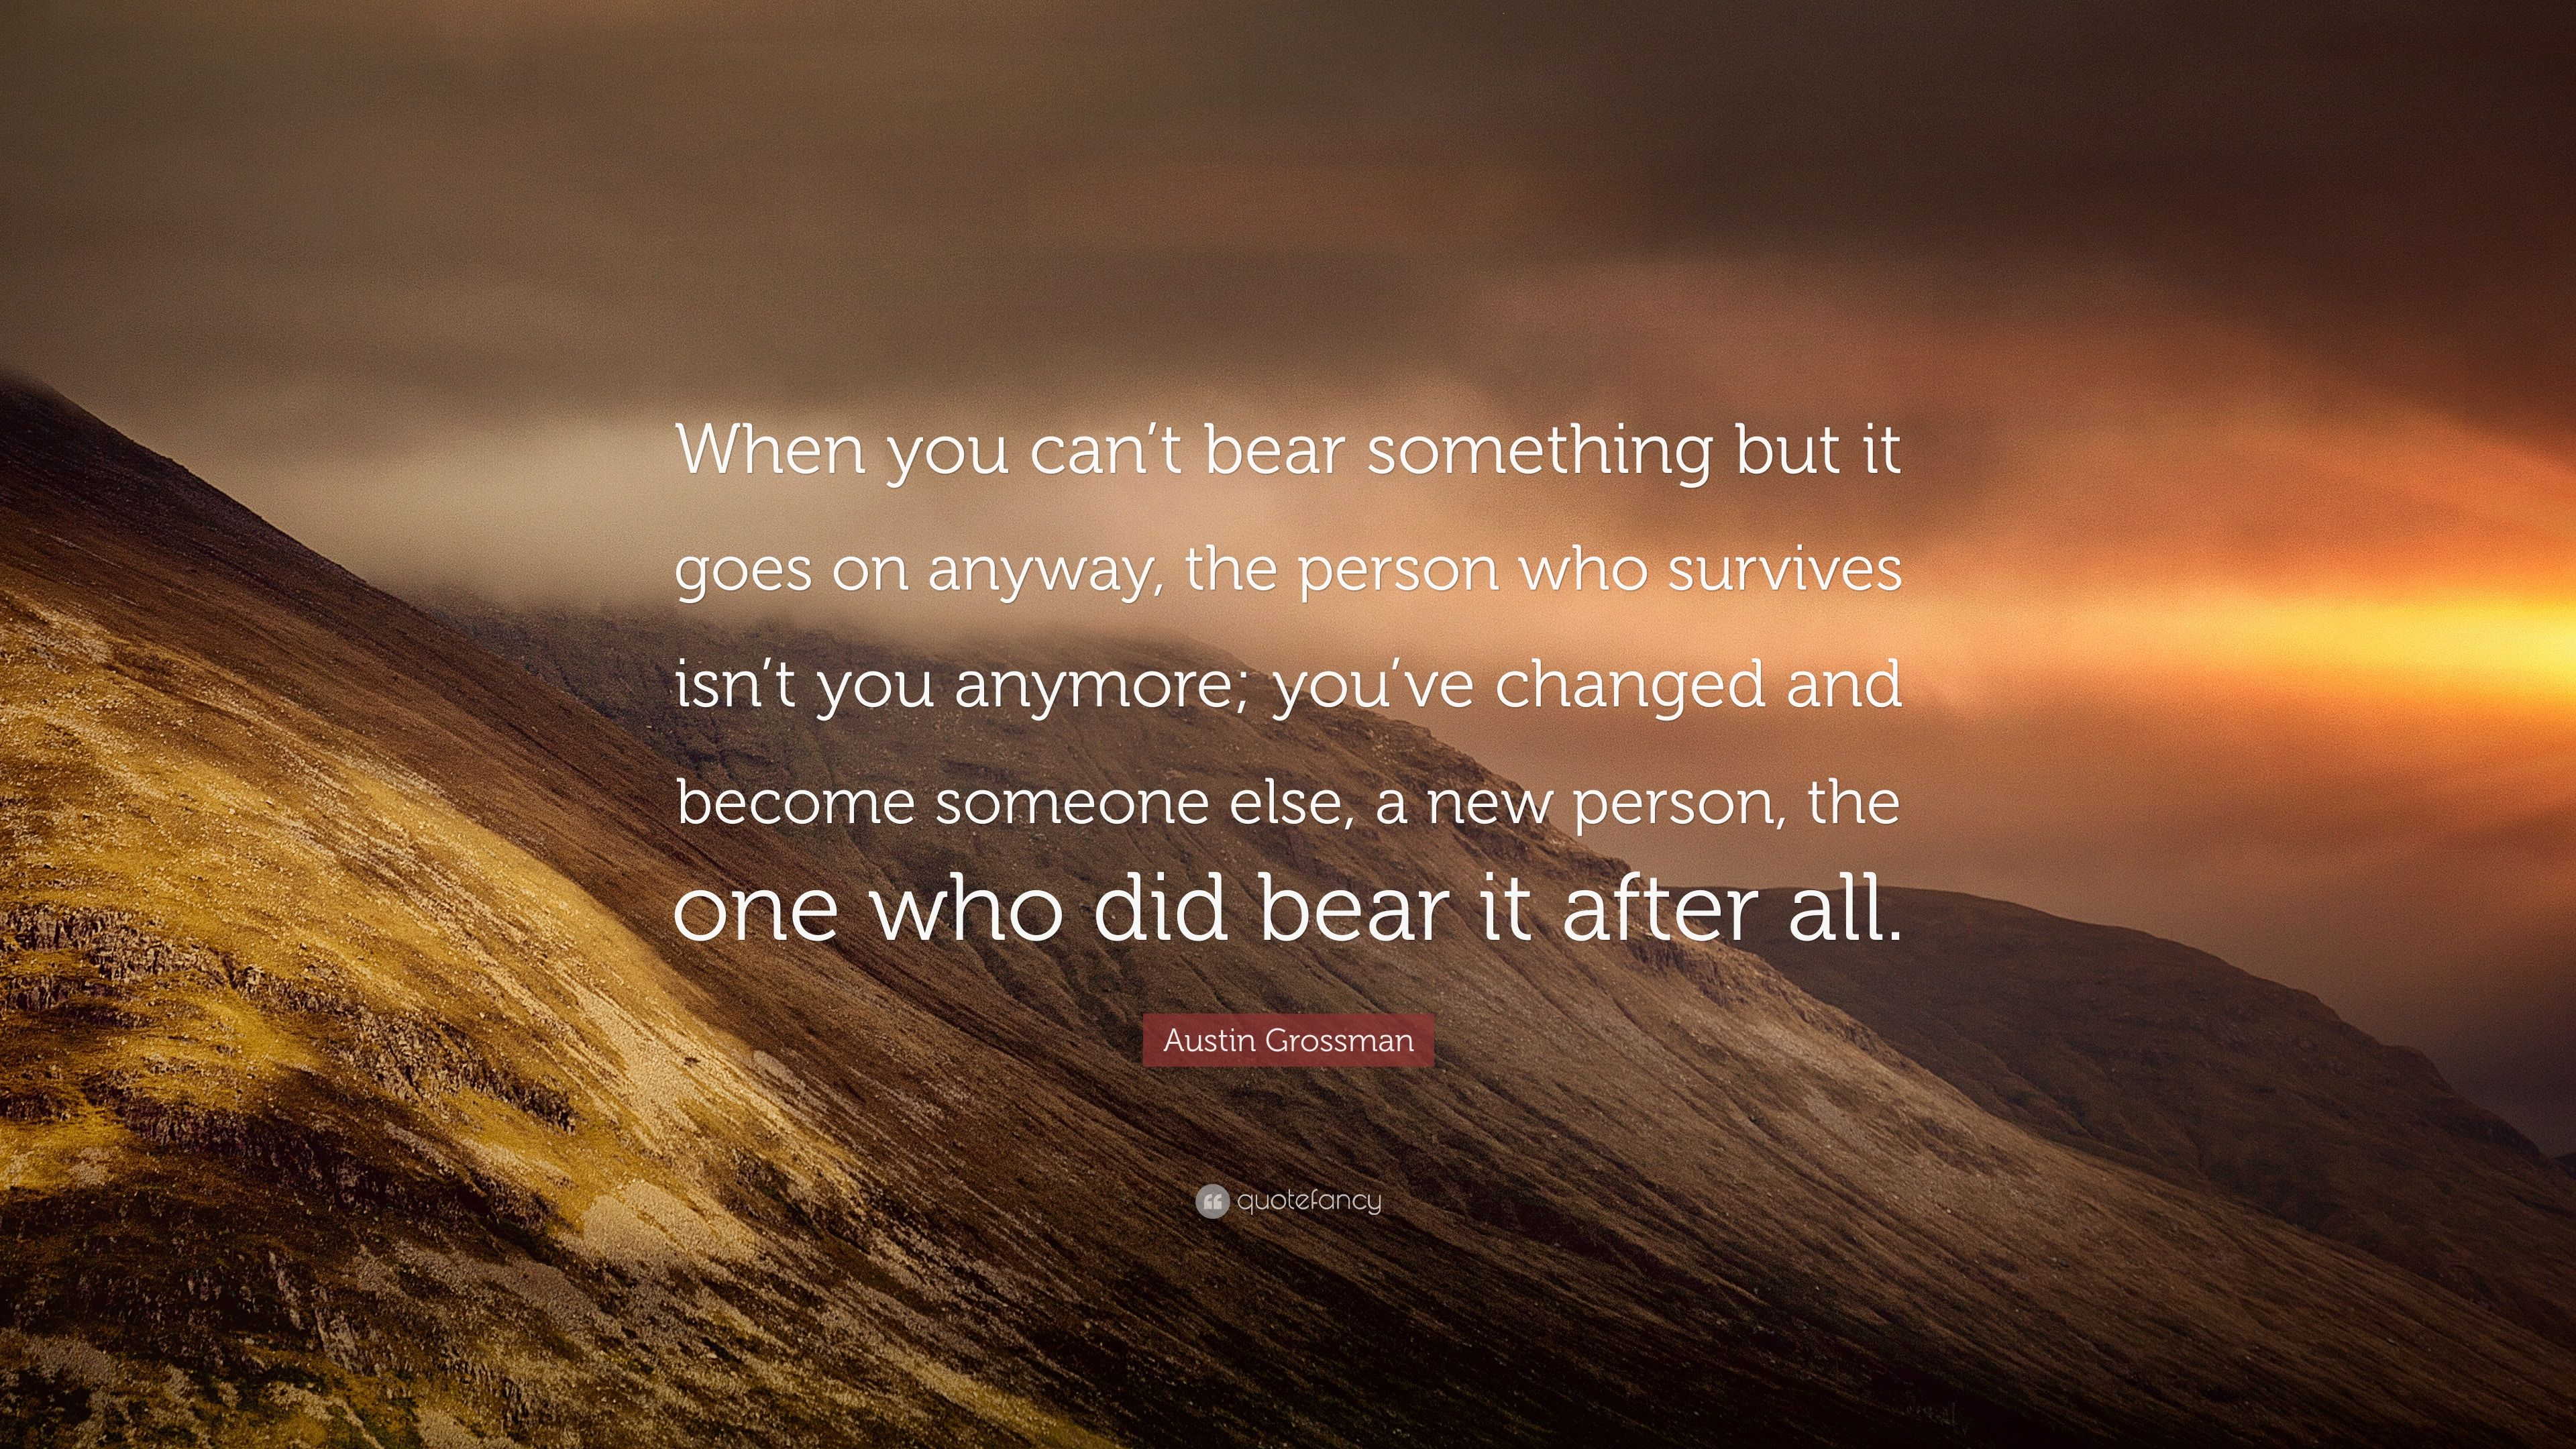 Austin Grossman Quote: U201cWhen You Canu0027t Bear Something But It Goes On